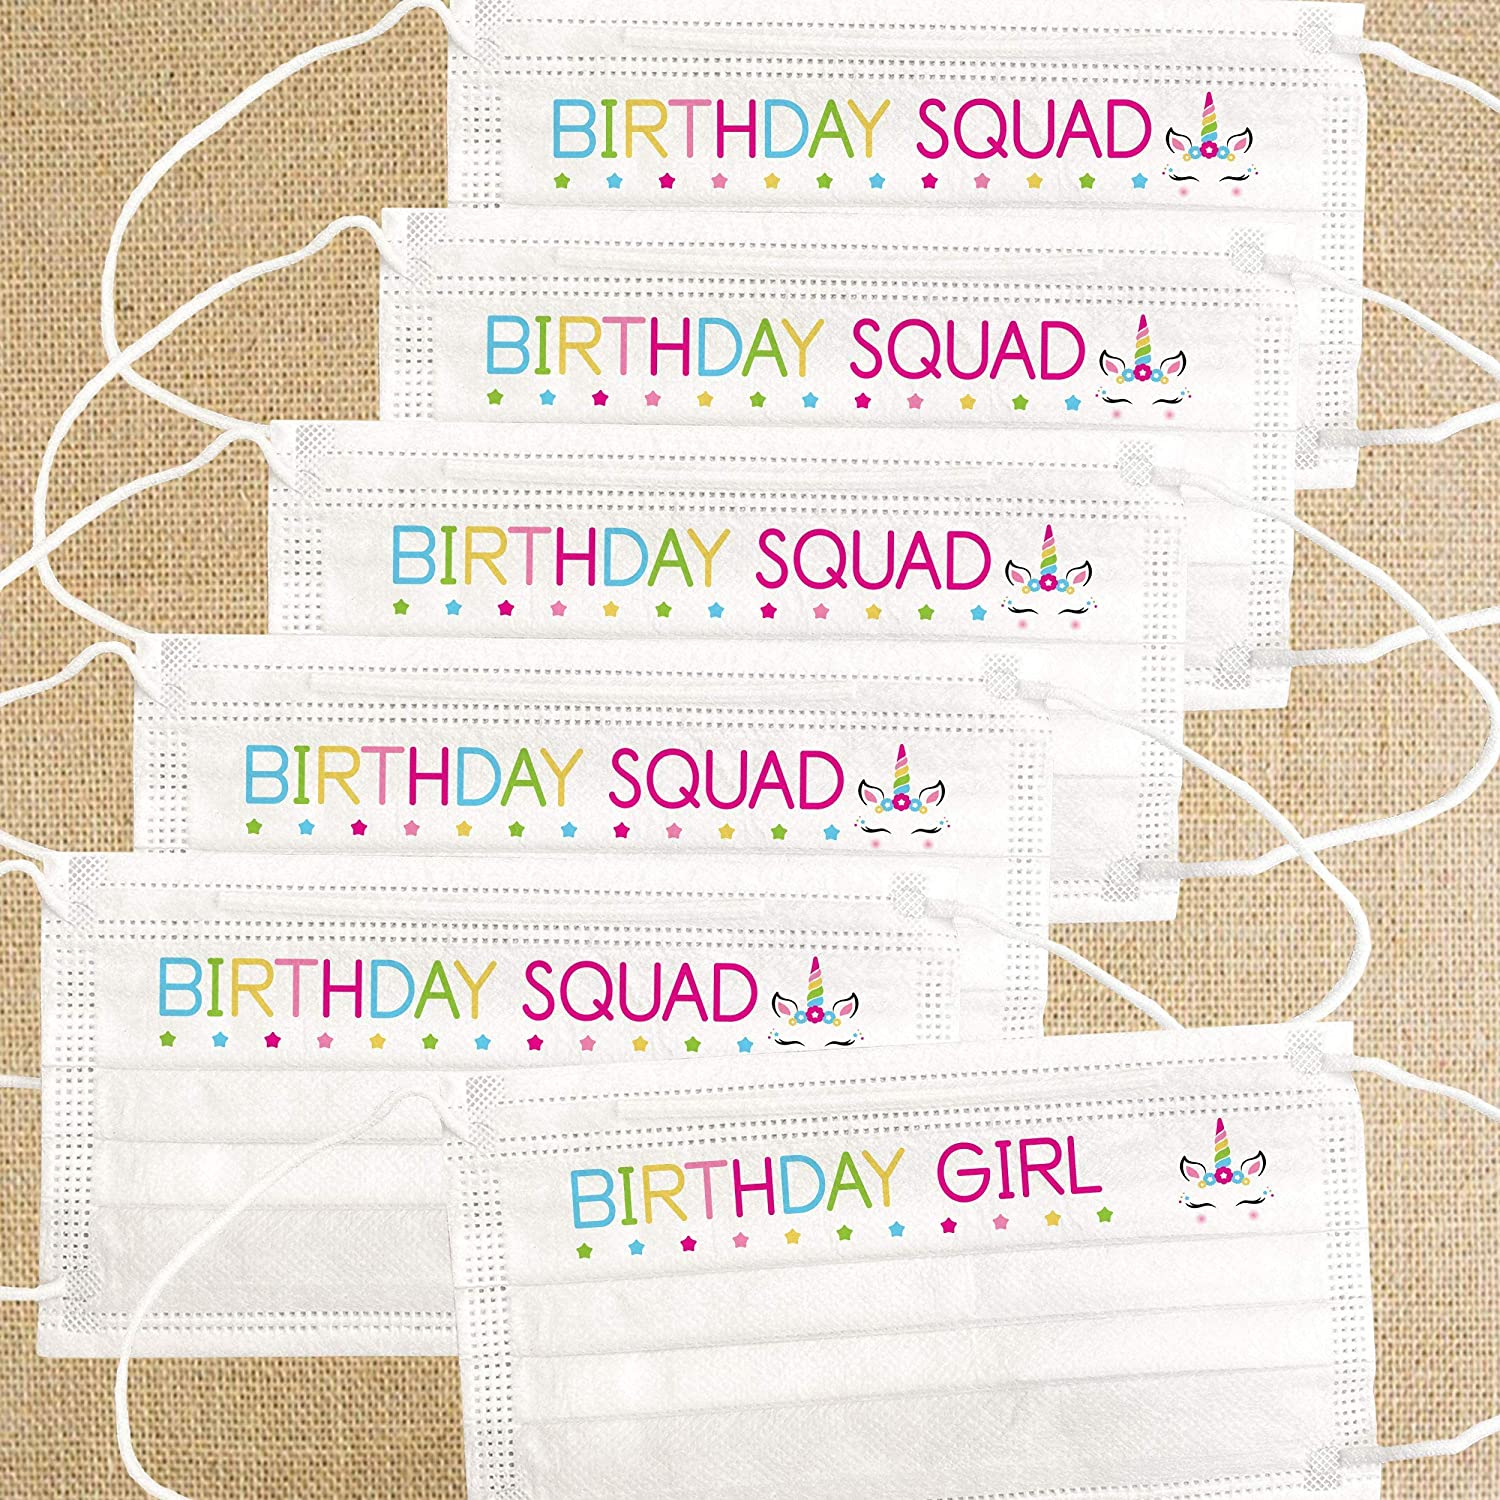 Girls Birthday Face Masks - Houston Mall National uniform free shipping Disposable Mask Pack Squad